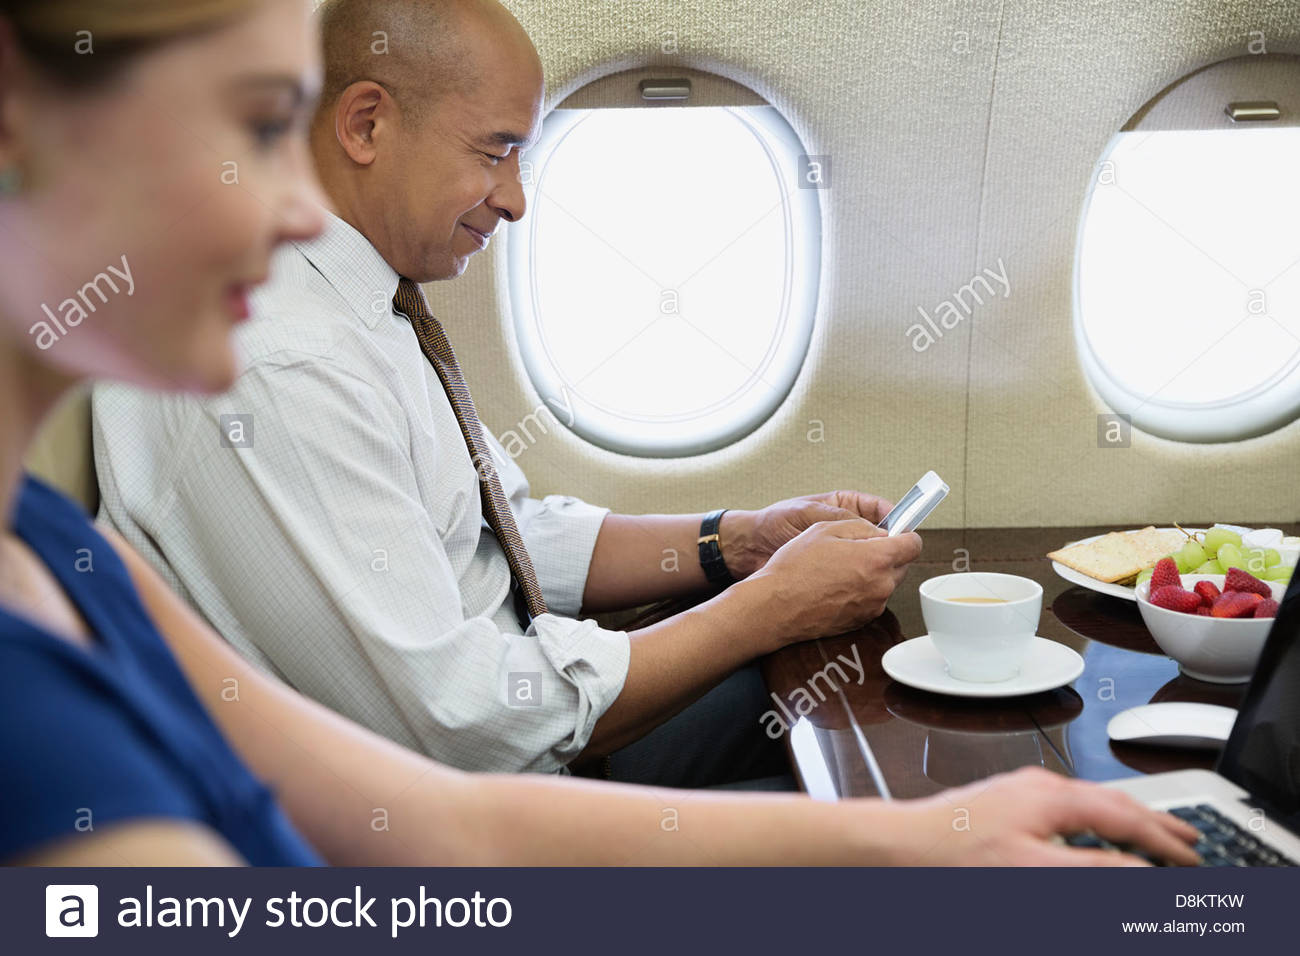 Business colleagues using technology in airplane - Stock Image